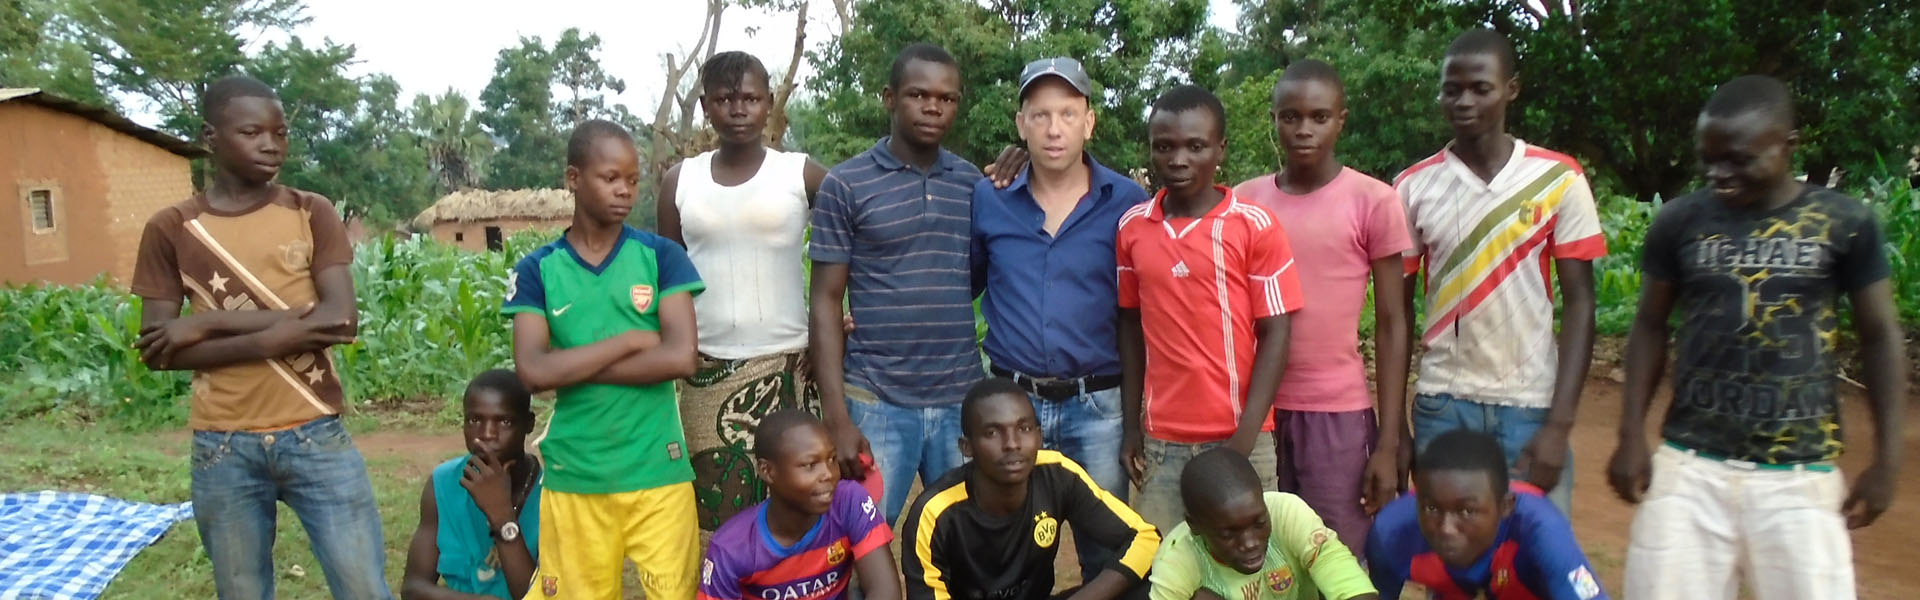 The JRS mission for reconciliation in the Central African Republic